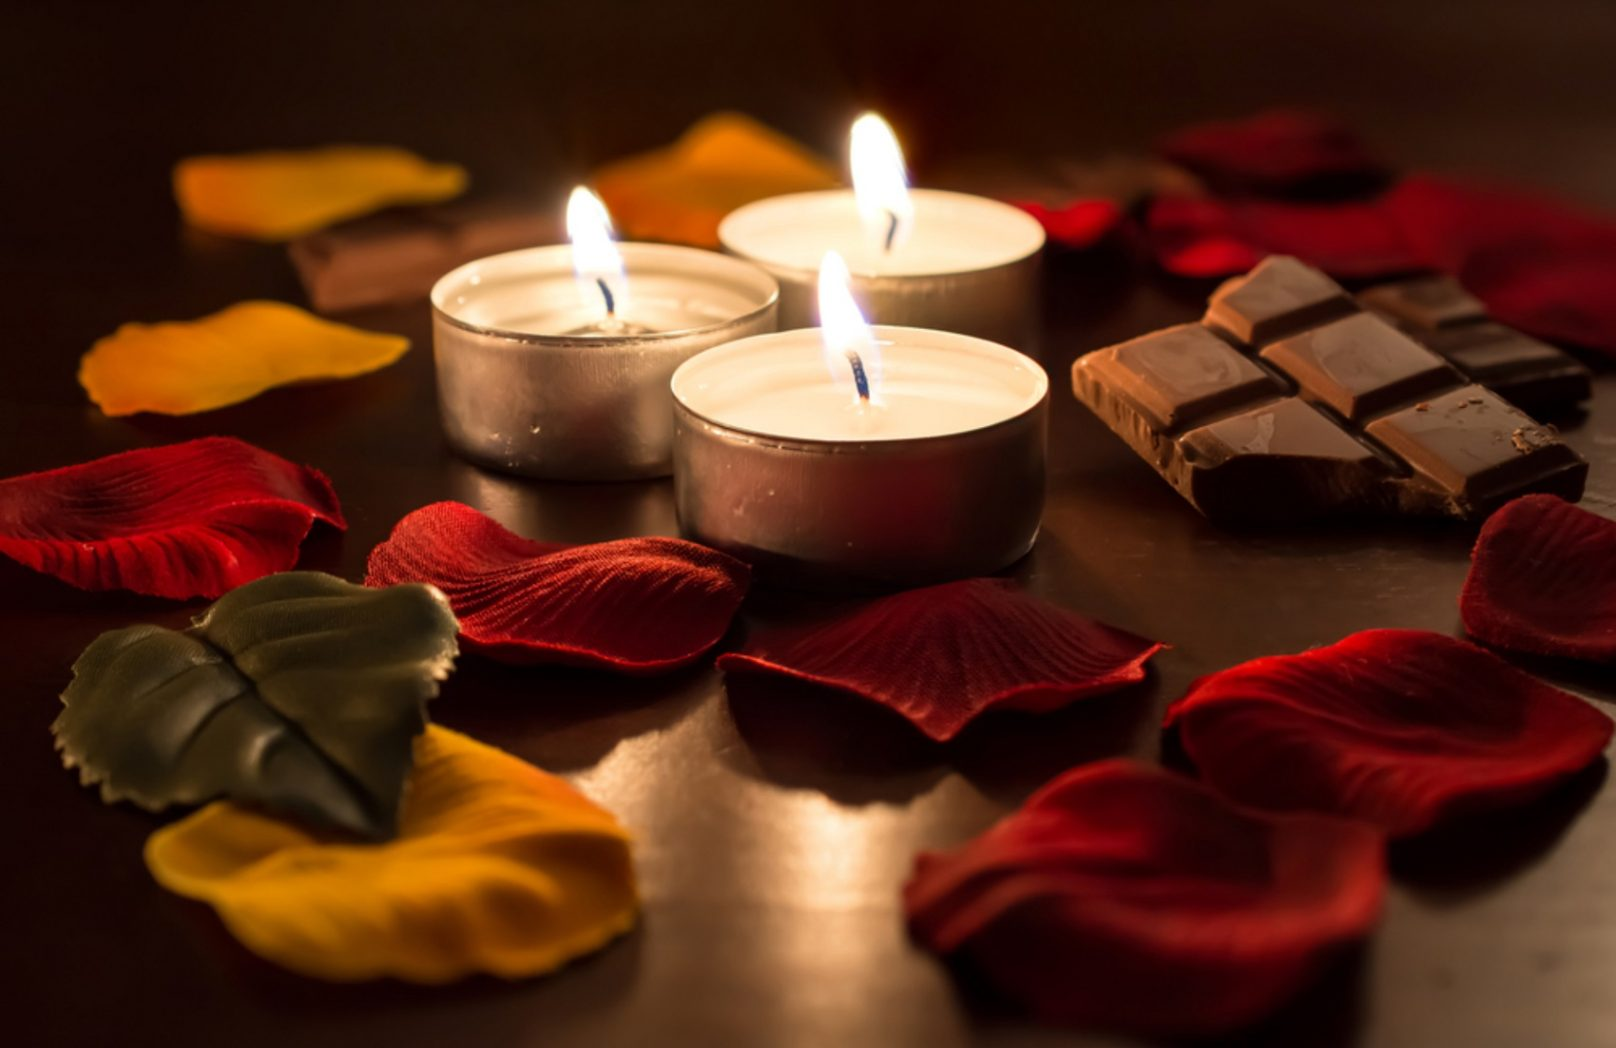 Spa candles with chocolate and rose petals